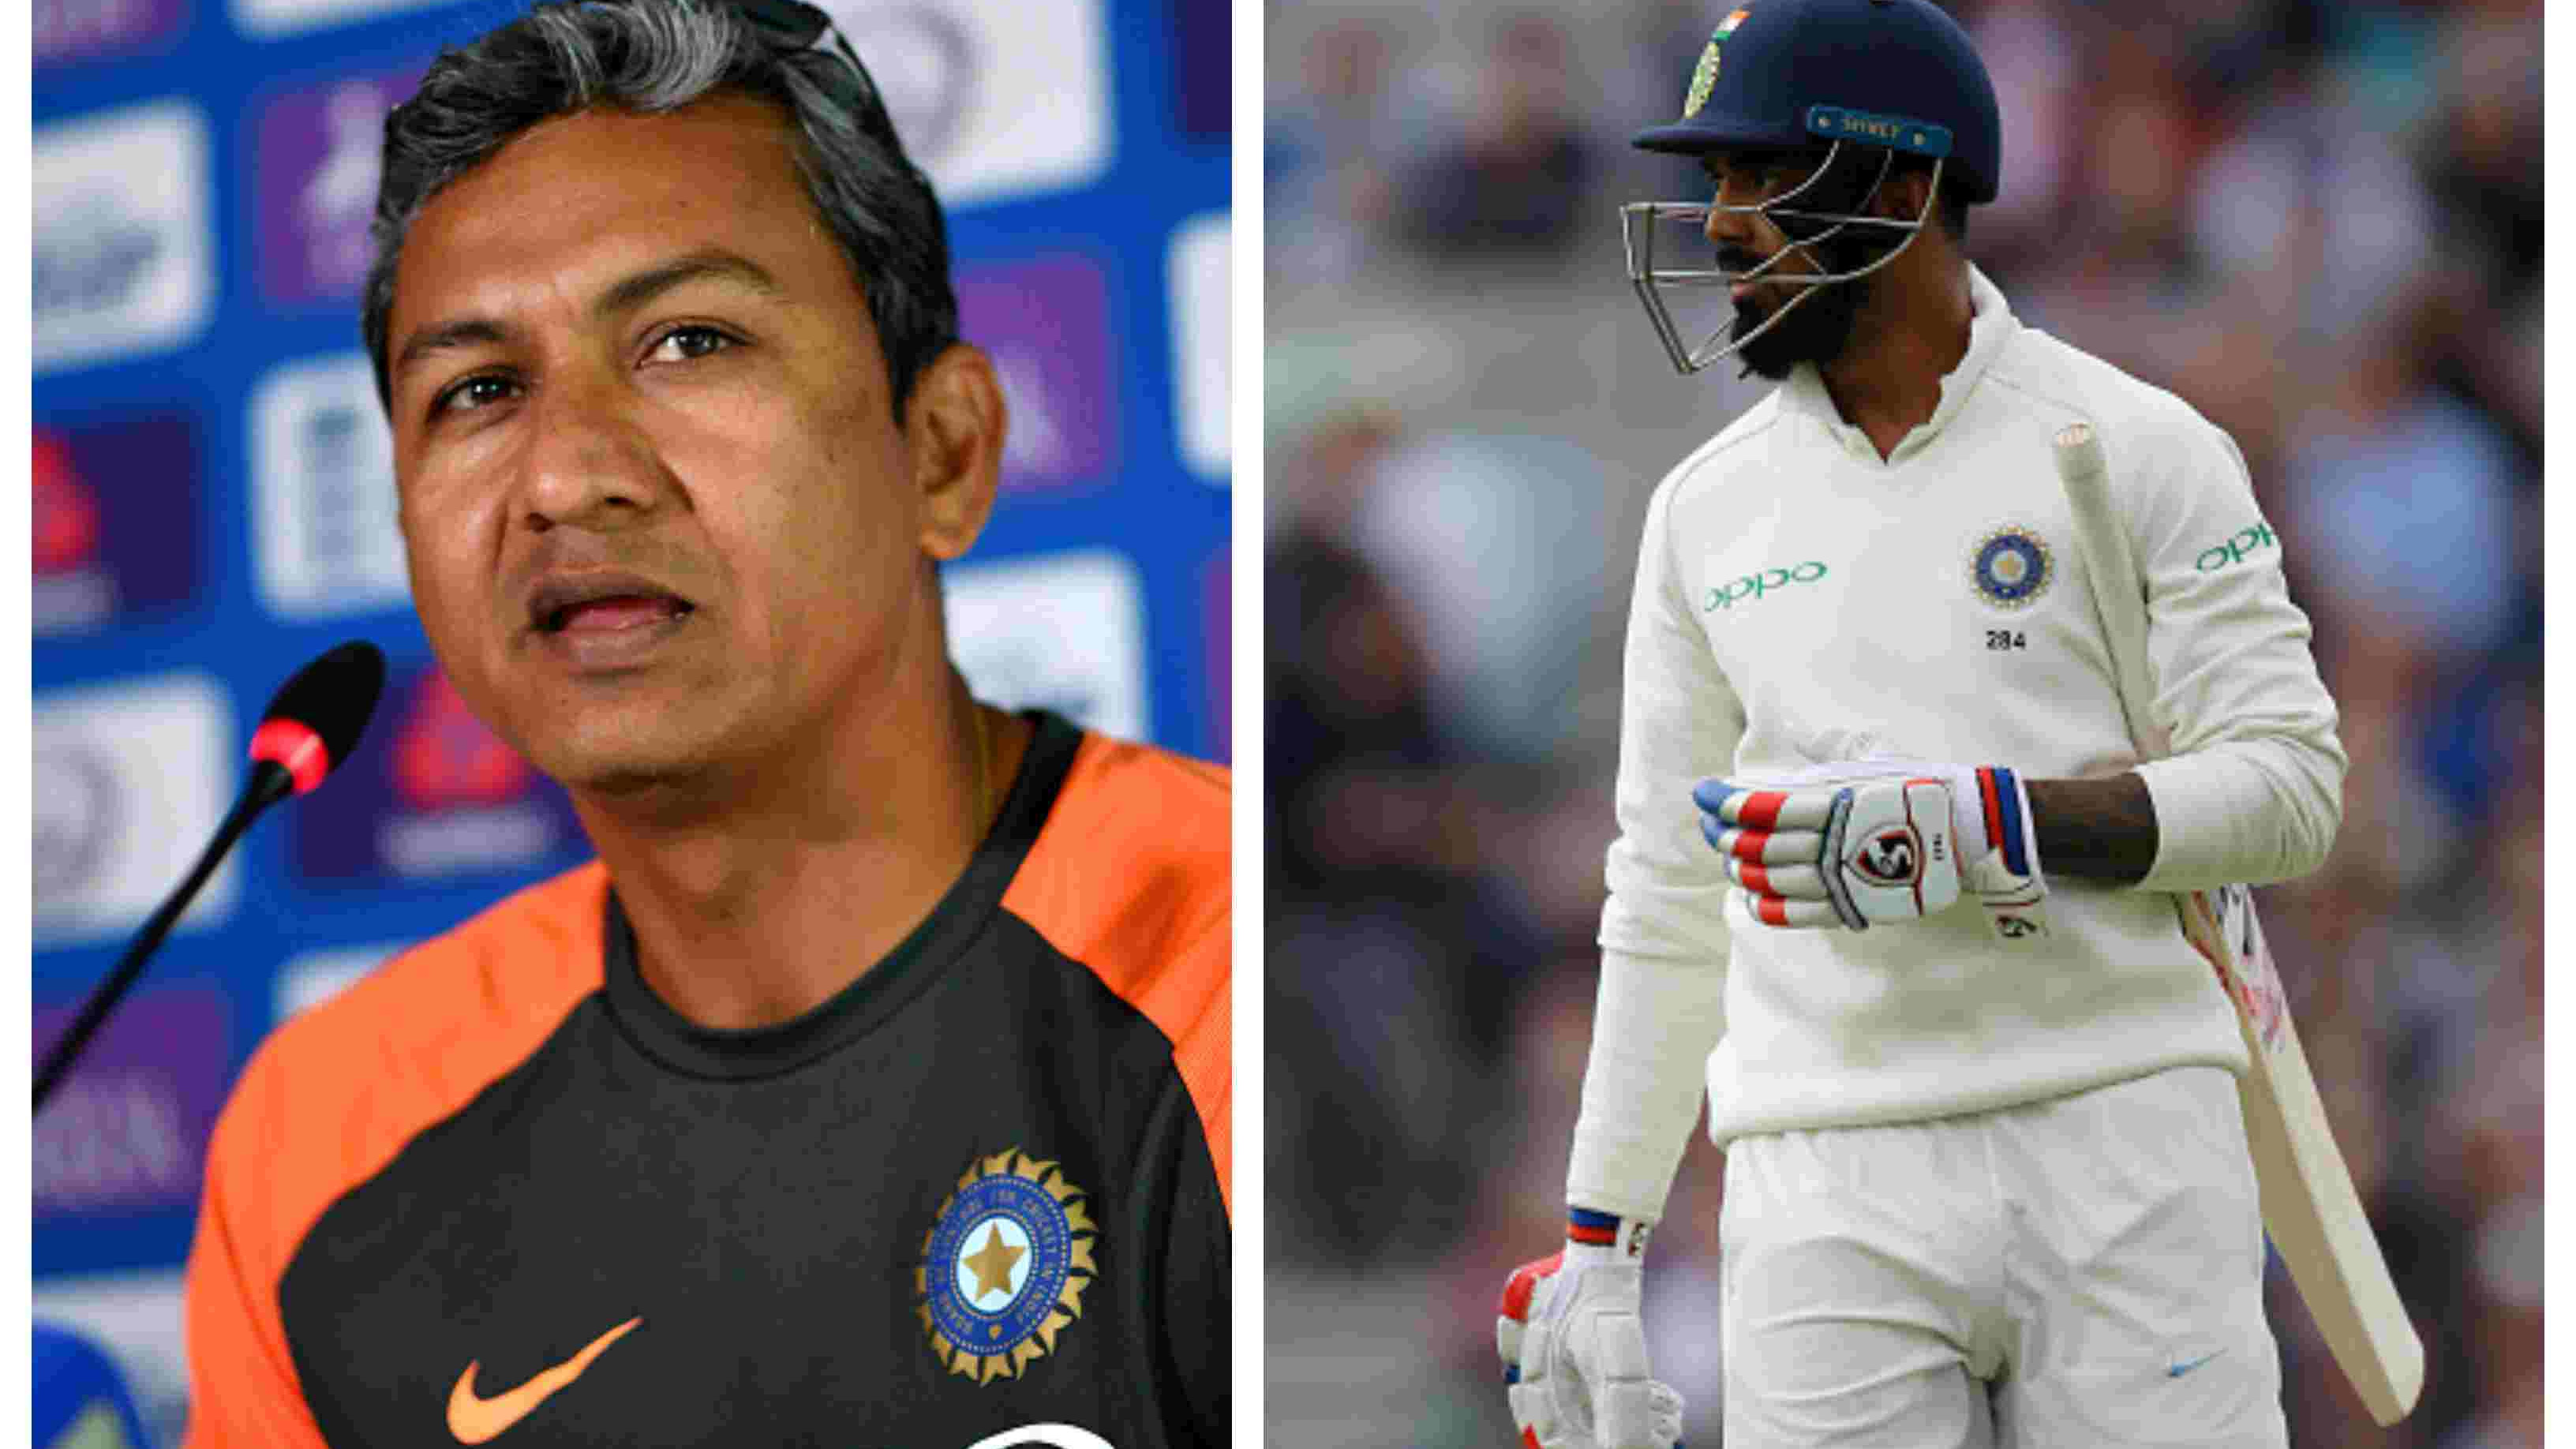 AUS v IND 2018-19: KL Rahul is in good shape but finds new ways to get out, says Sanjay Bangar